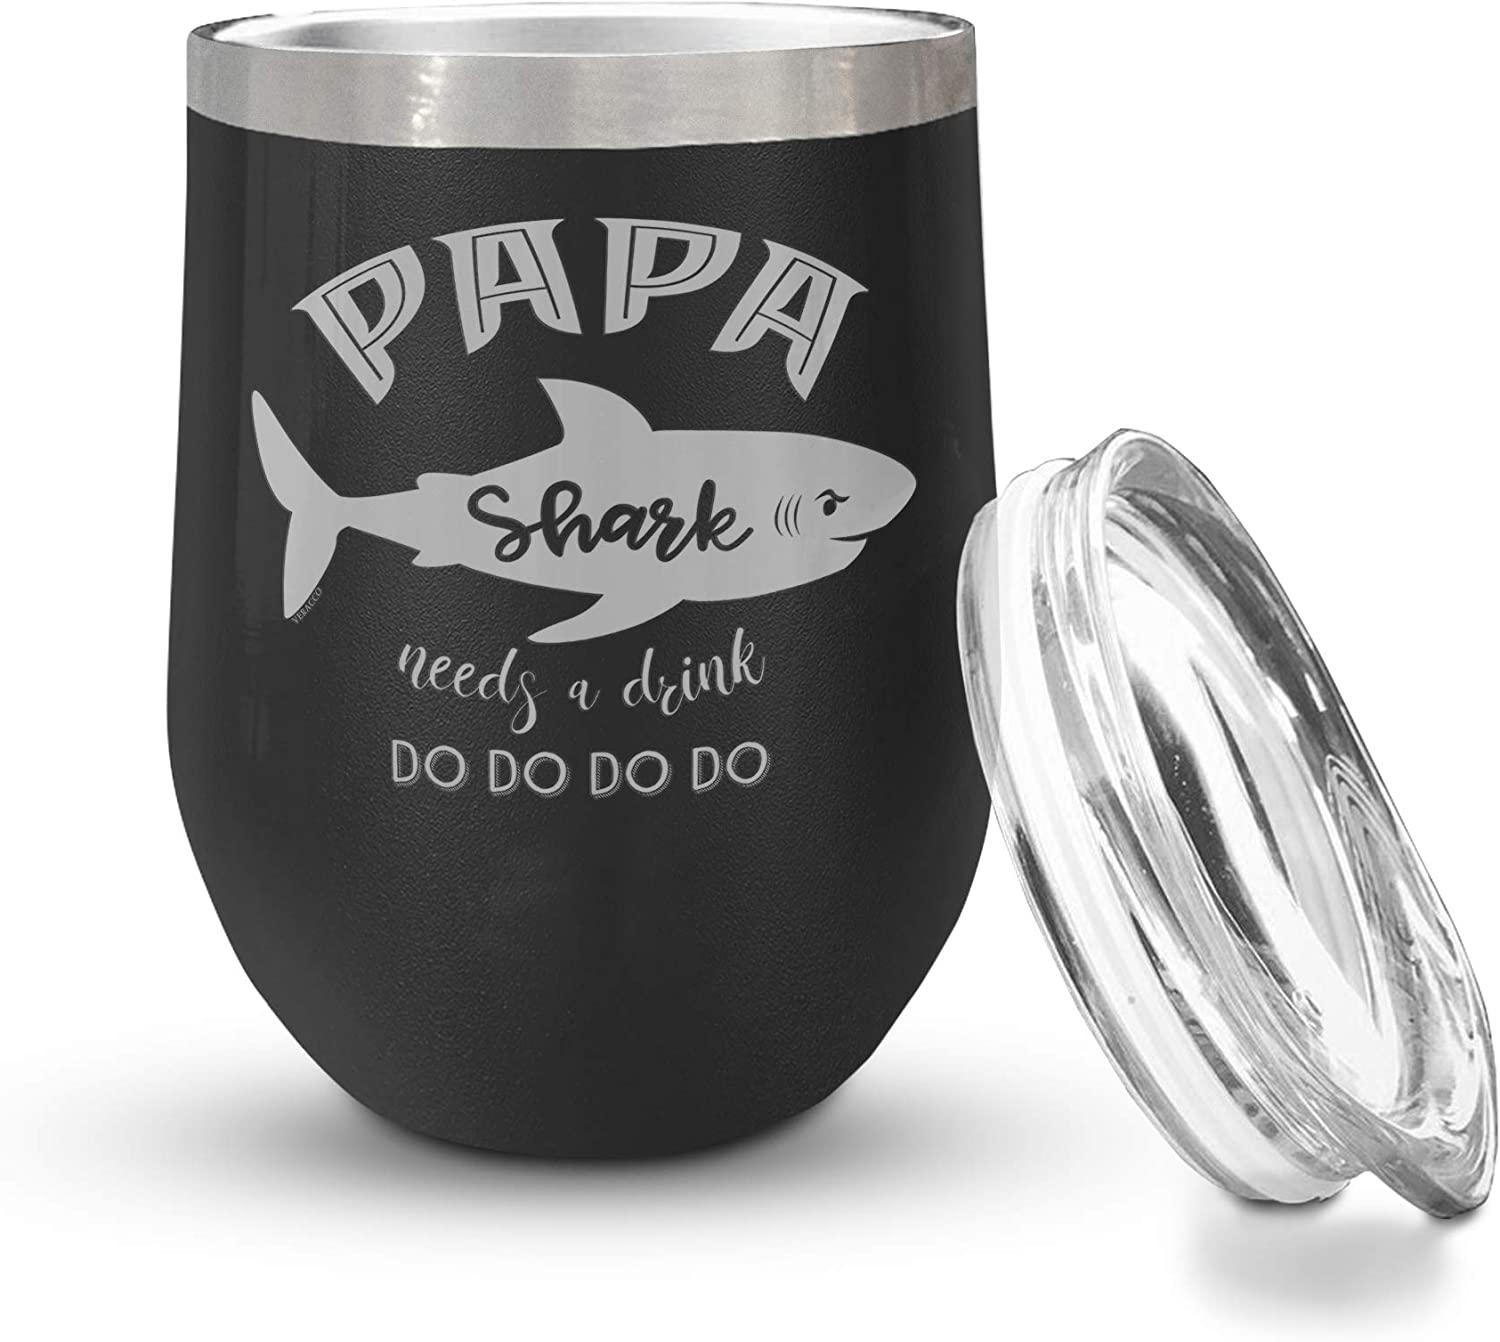 Veracco Papa Shark Needs A Drink Double Wall Insulated Tumbler with Splash Proof Lid (Black)